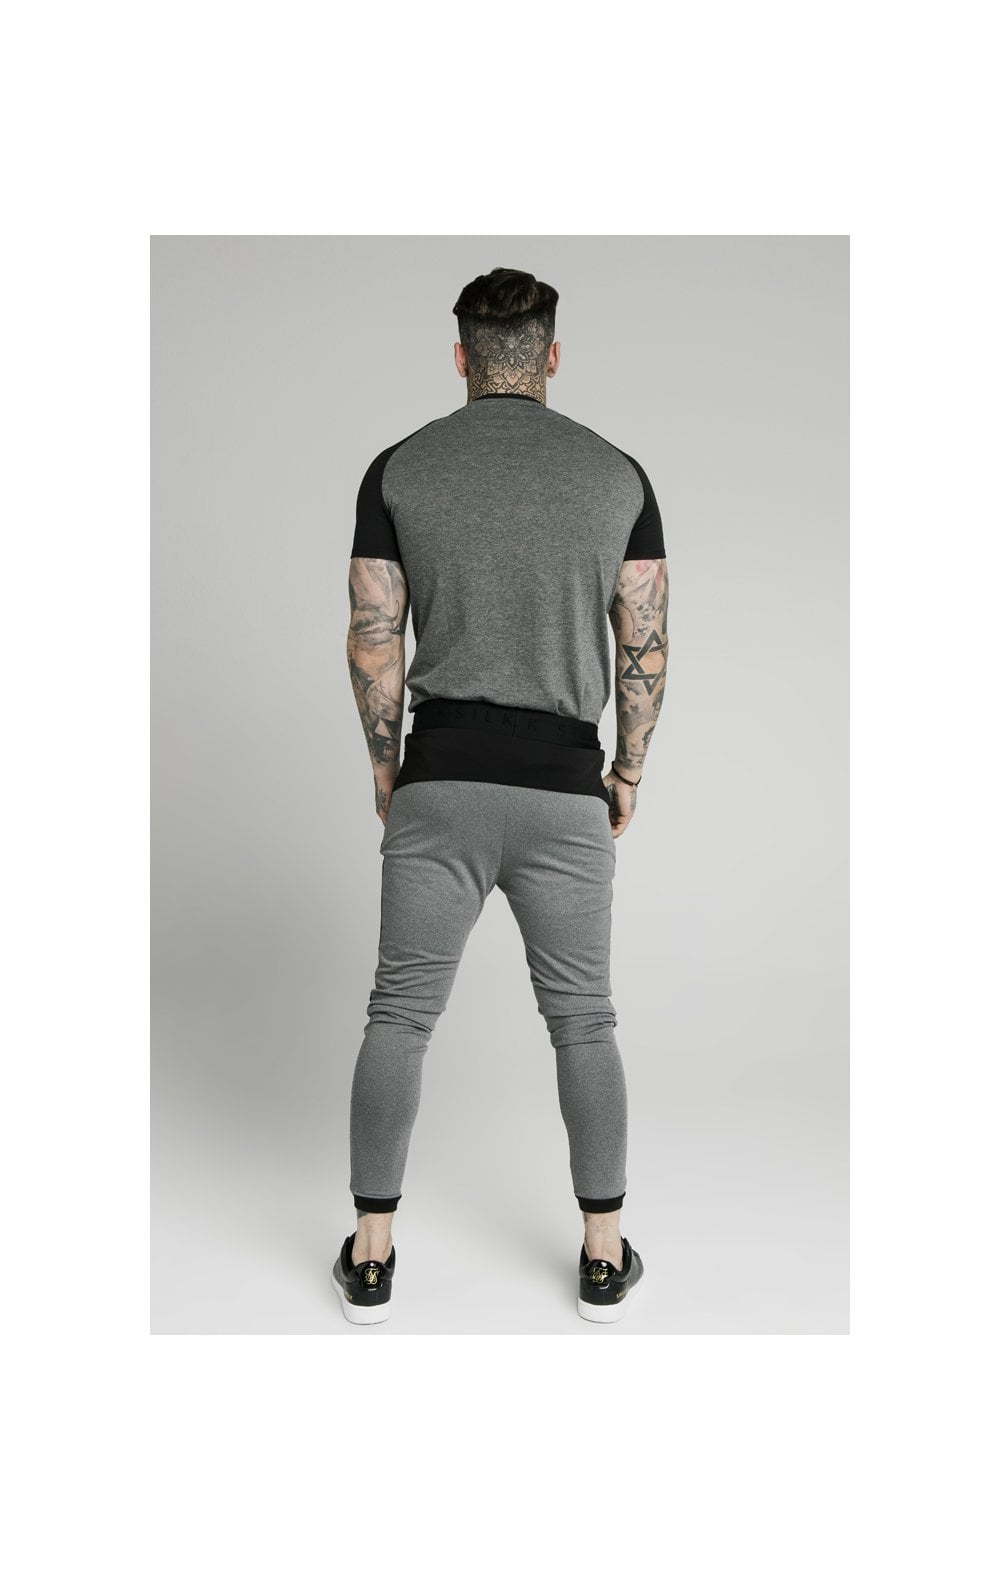 SikSilk Endurance Gym Tee - Black & Grey (5)